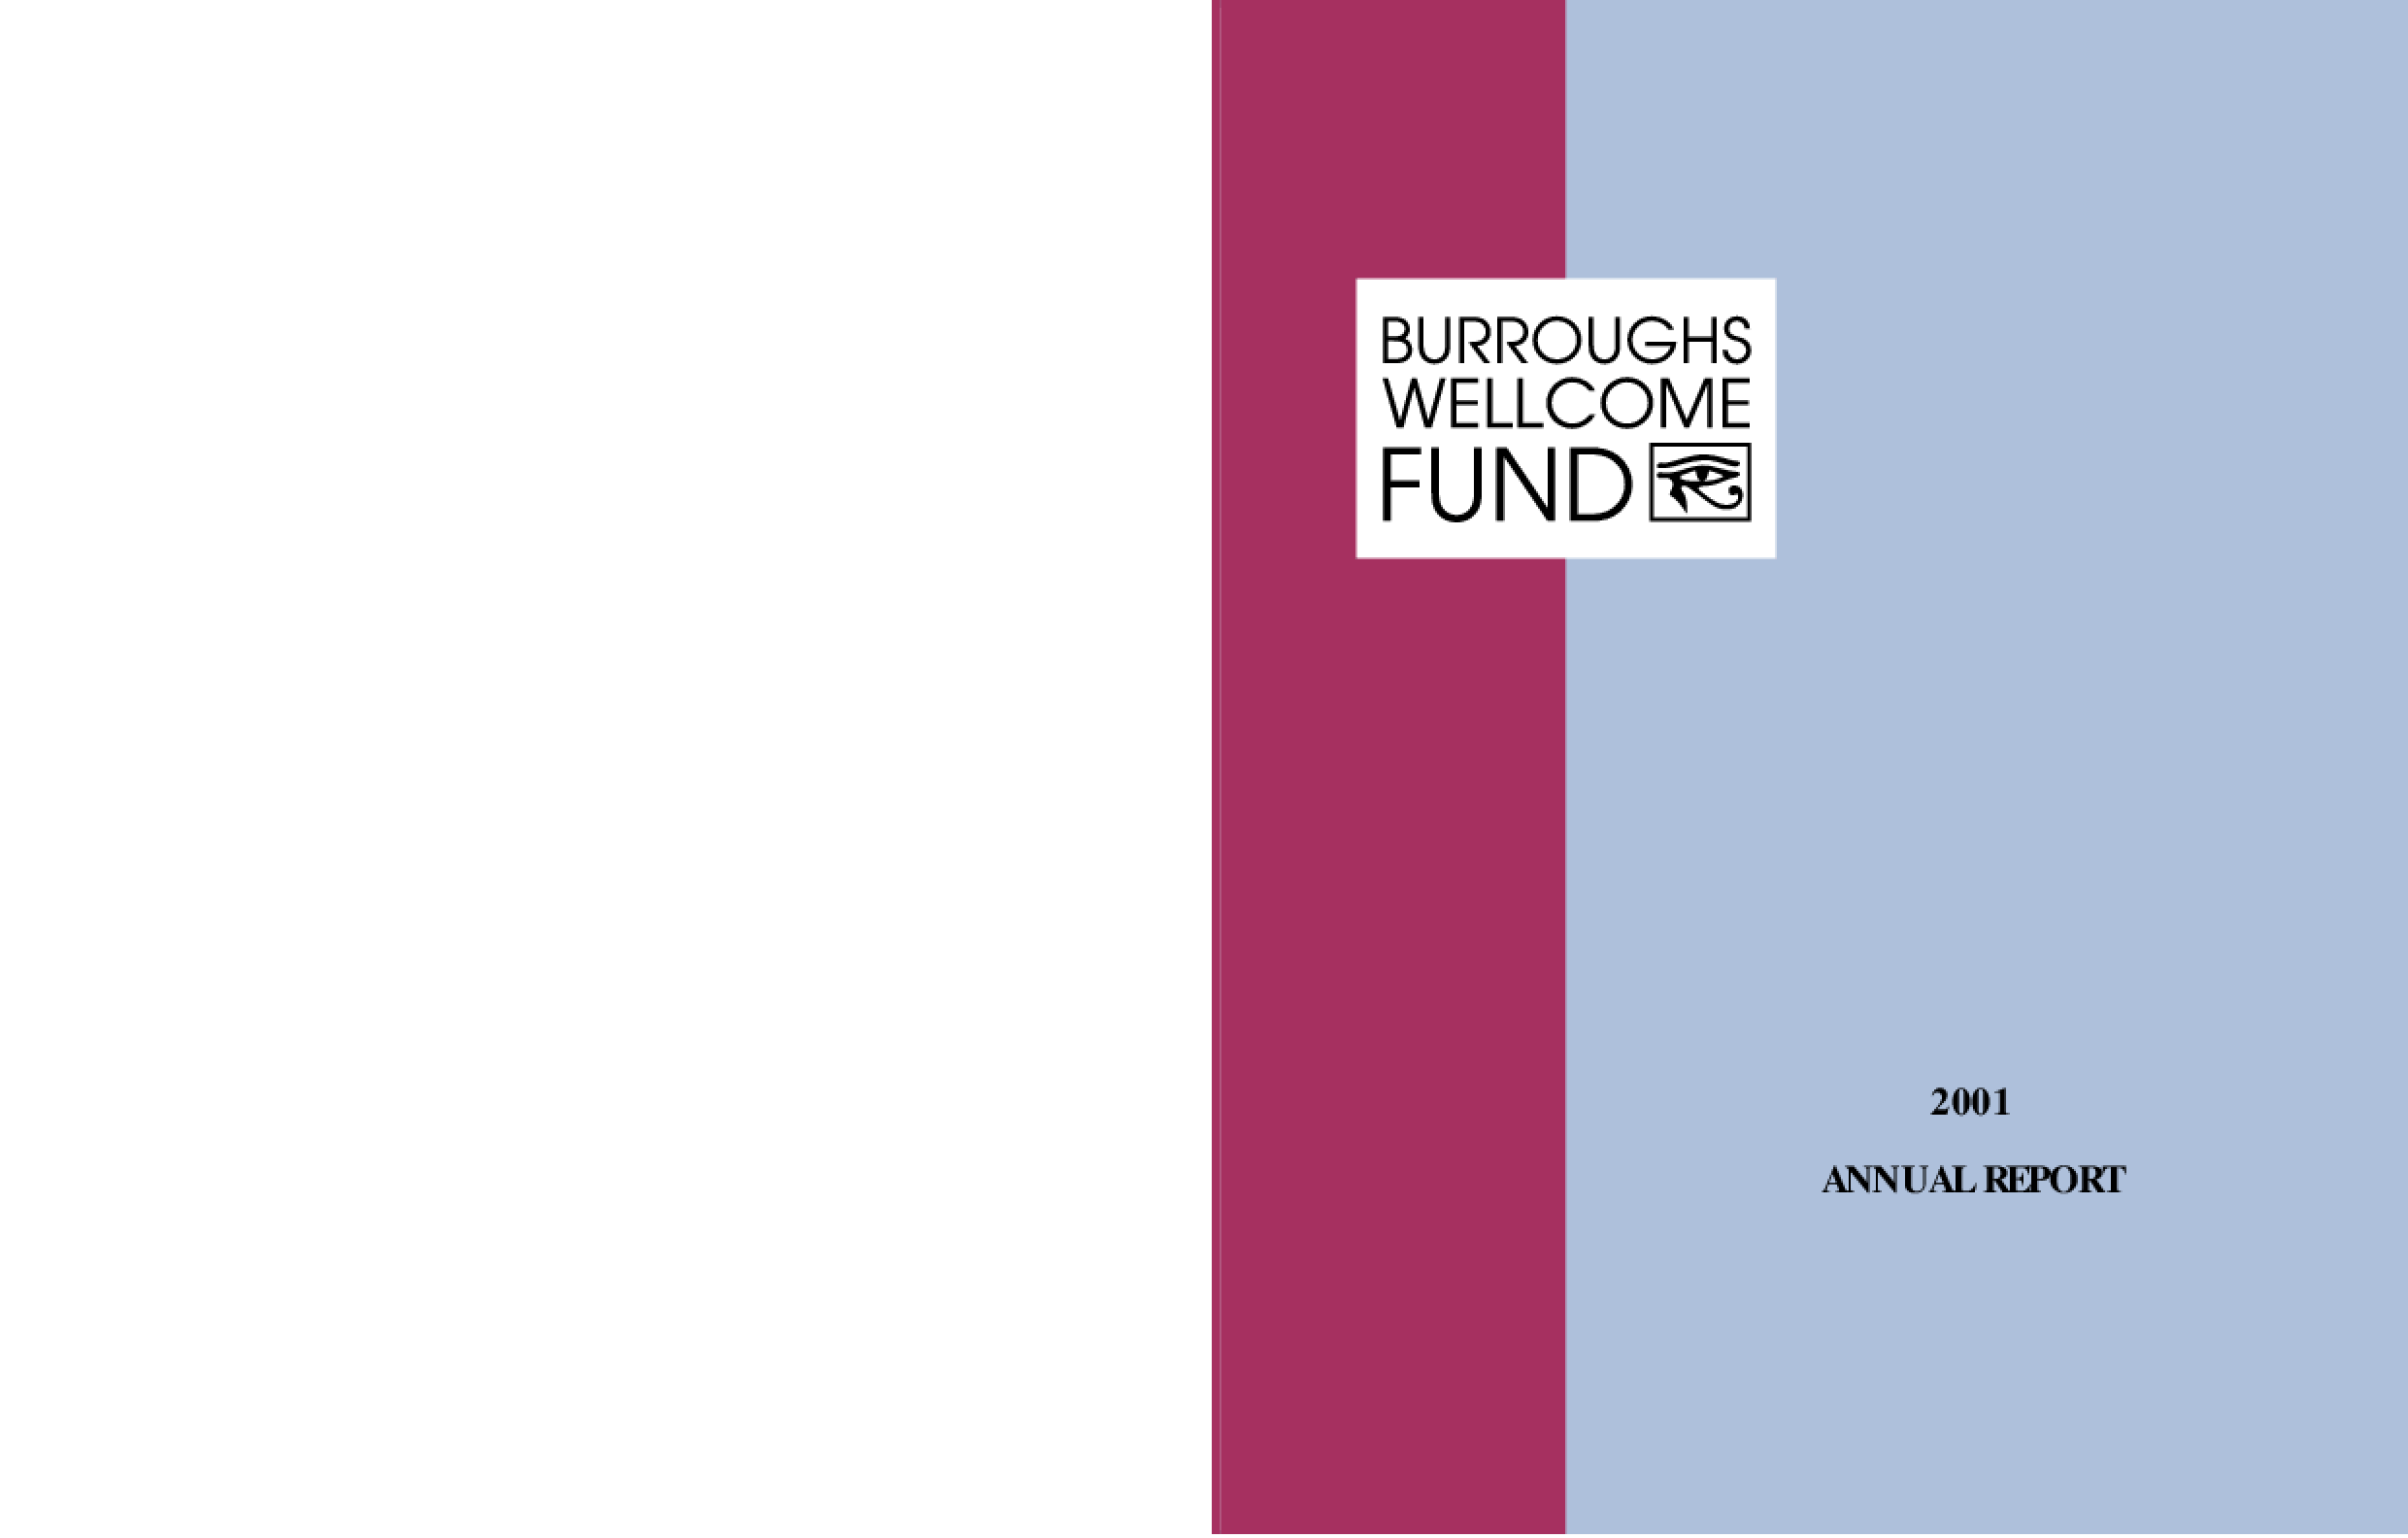 Burroughs Wellcome Fund - 2001 Annual Report